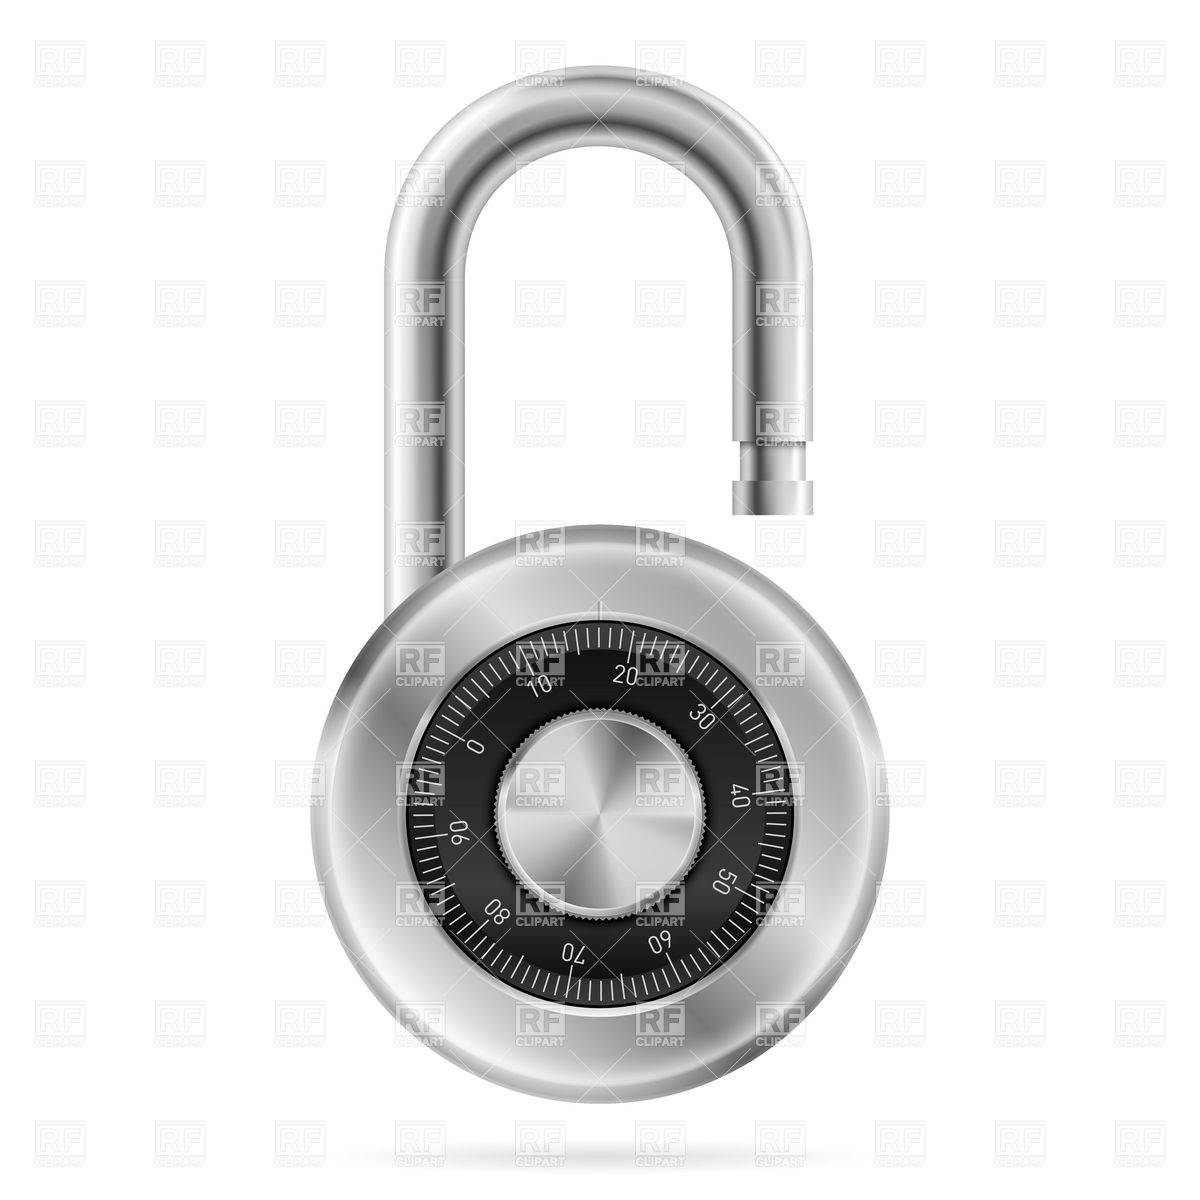 Unlocked Combination Lock Download Royalty Free Vector Clipart  Eps